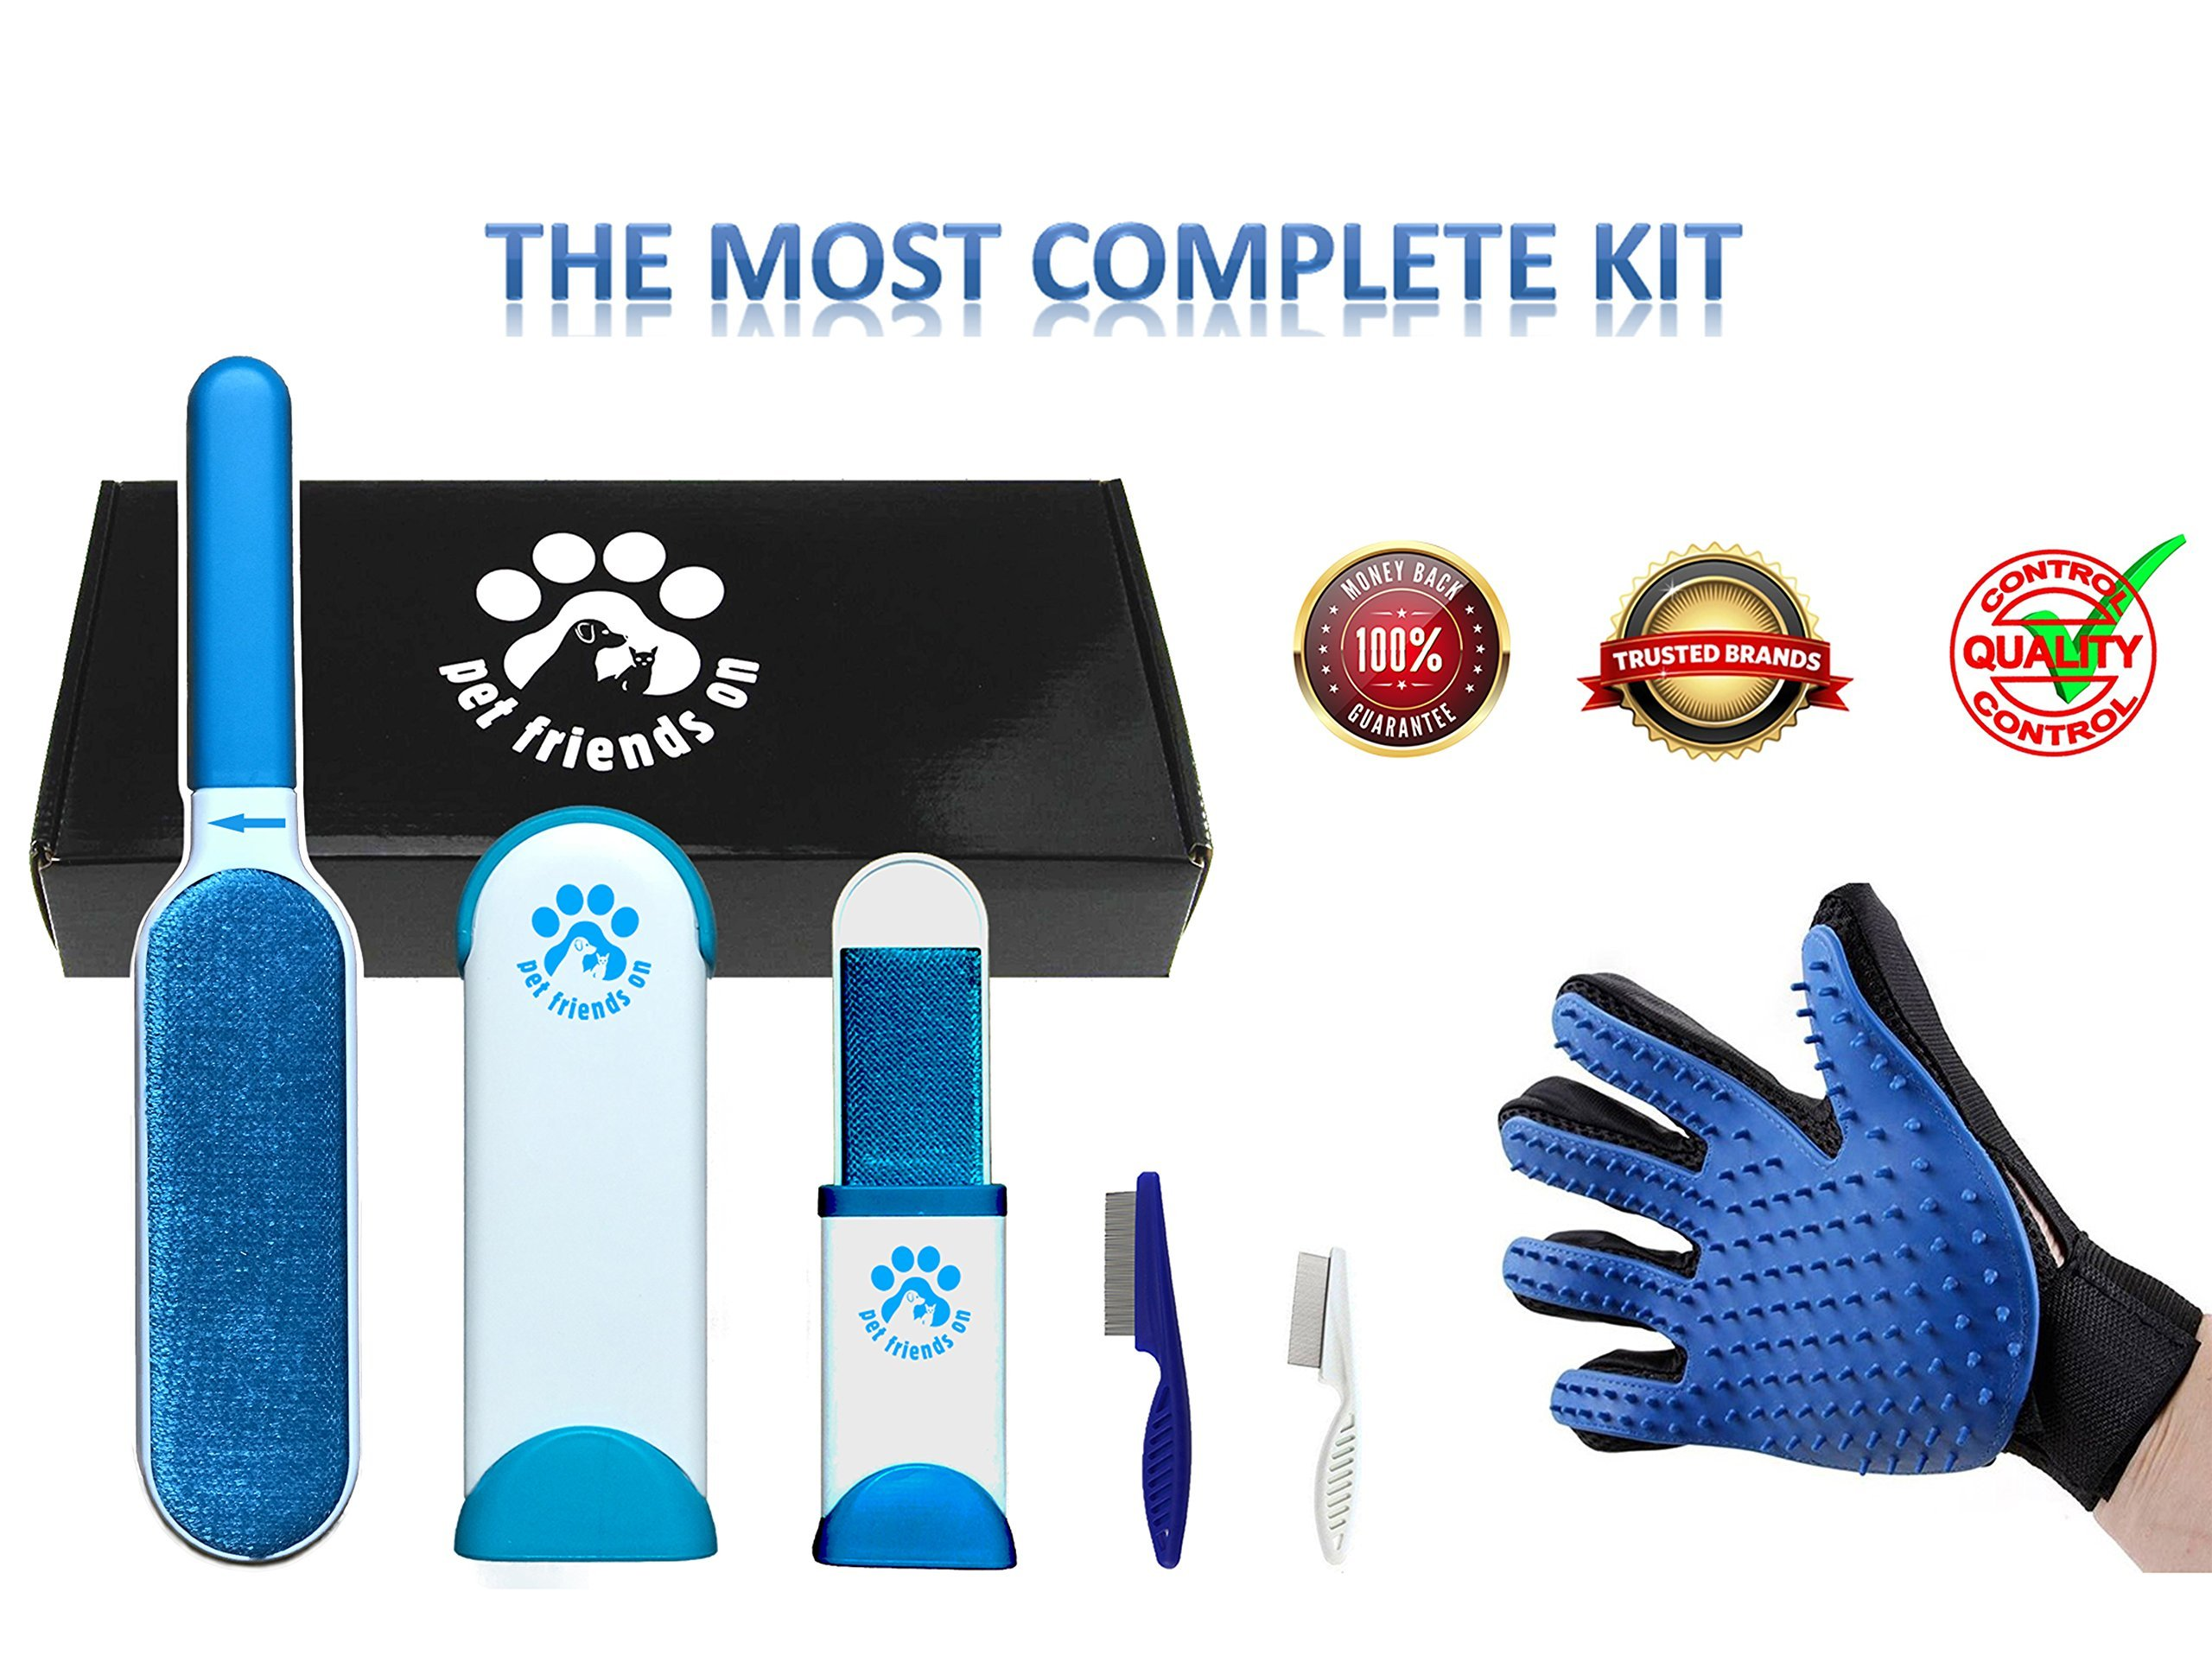 Fur Remover - Lint Brush - Pet Hair Brush With Self Cleaning Base - Dog & Cat Grooming Glove - Efficient Animal Hair Removal Tool - Two Combs Bonus Box by Pet Friends On